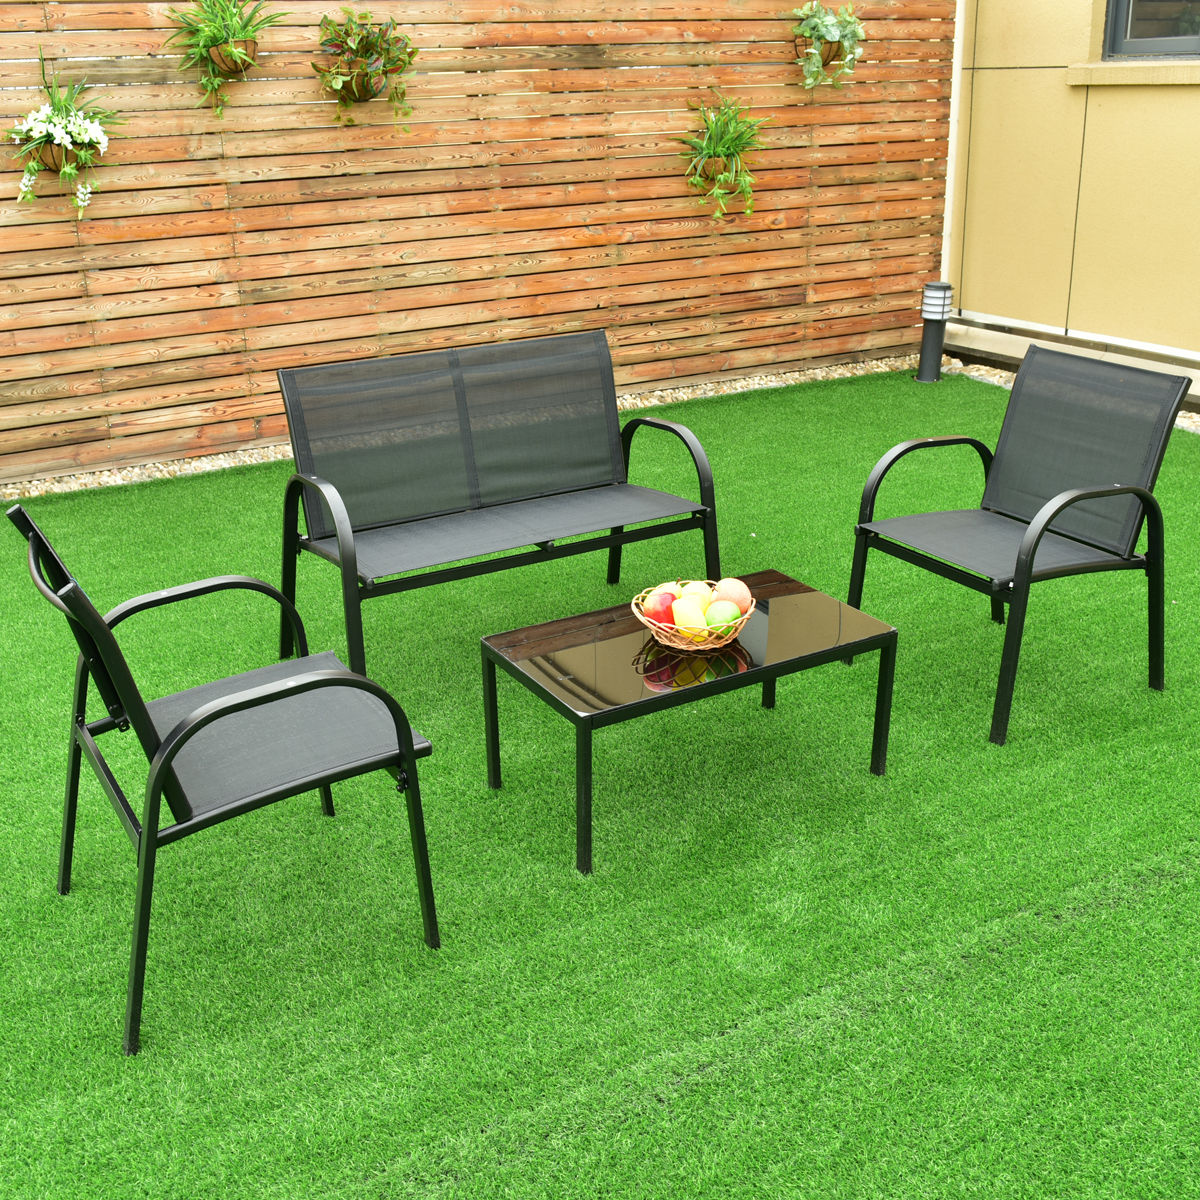 4 pcs Patio Furniture Set with Glass Top Coffee Table